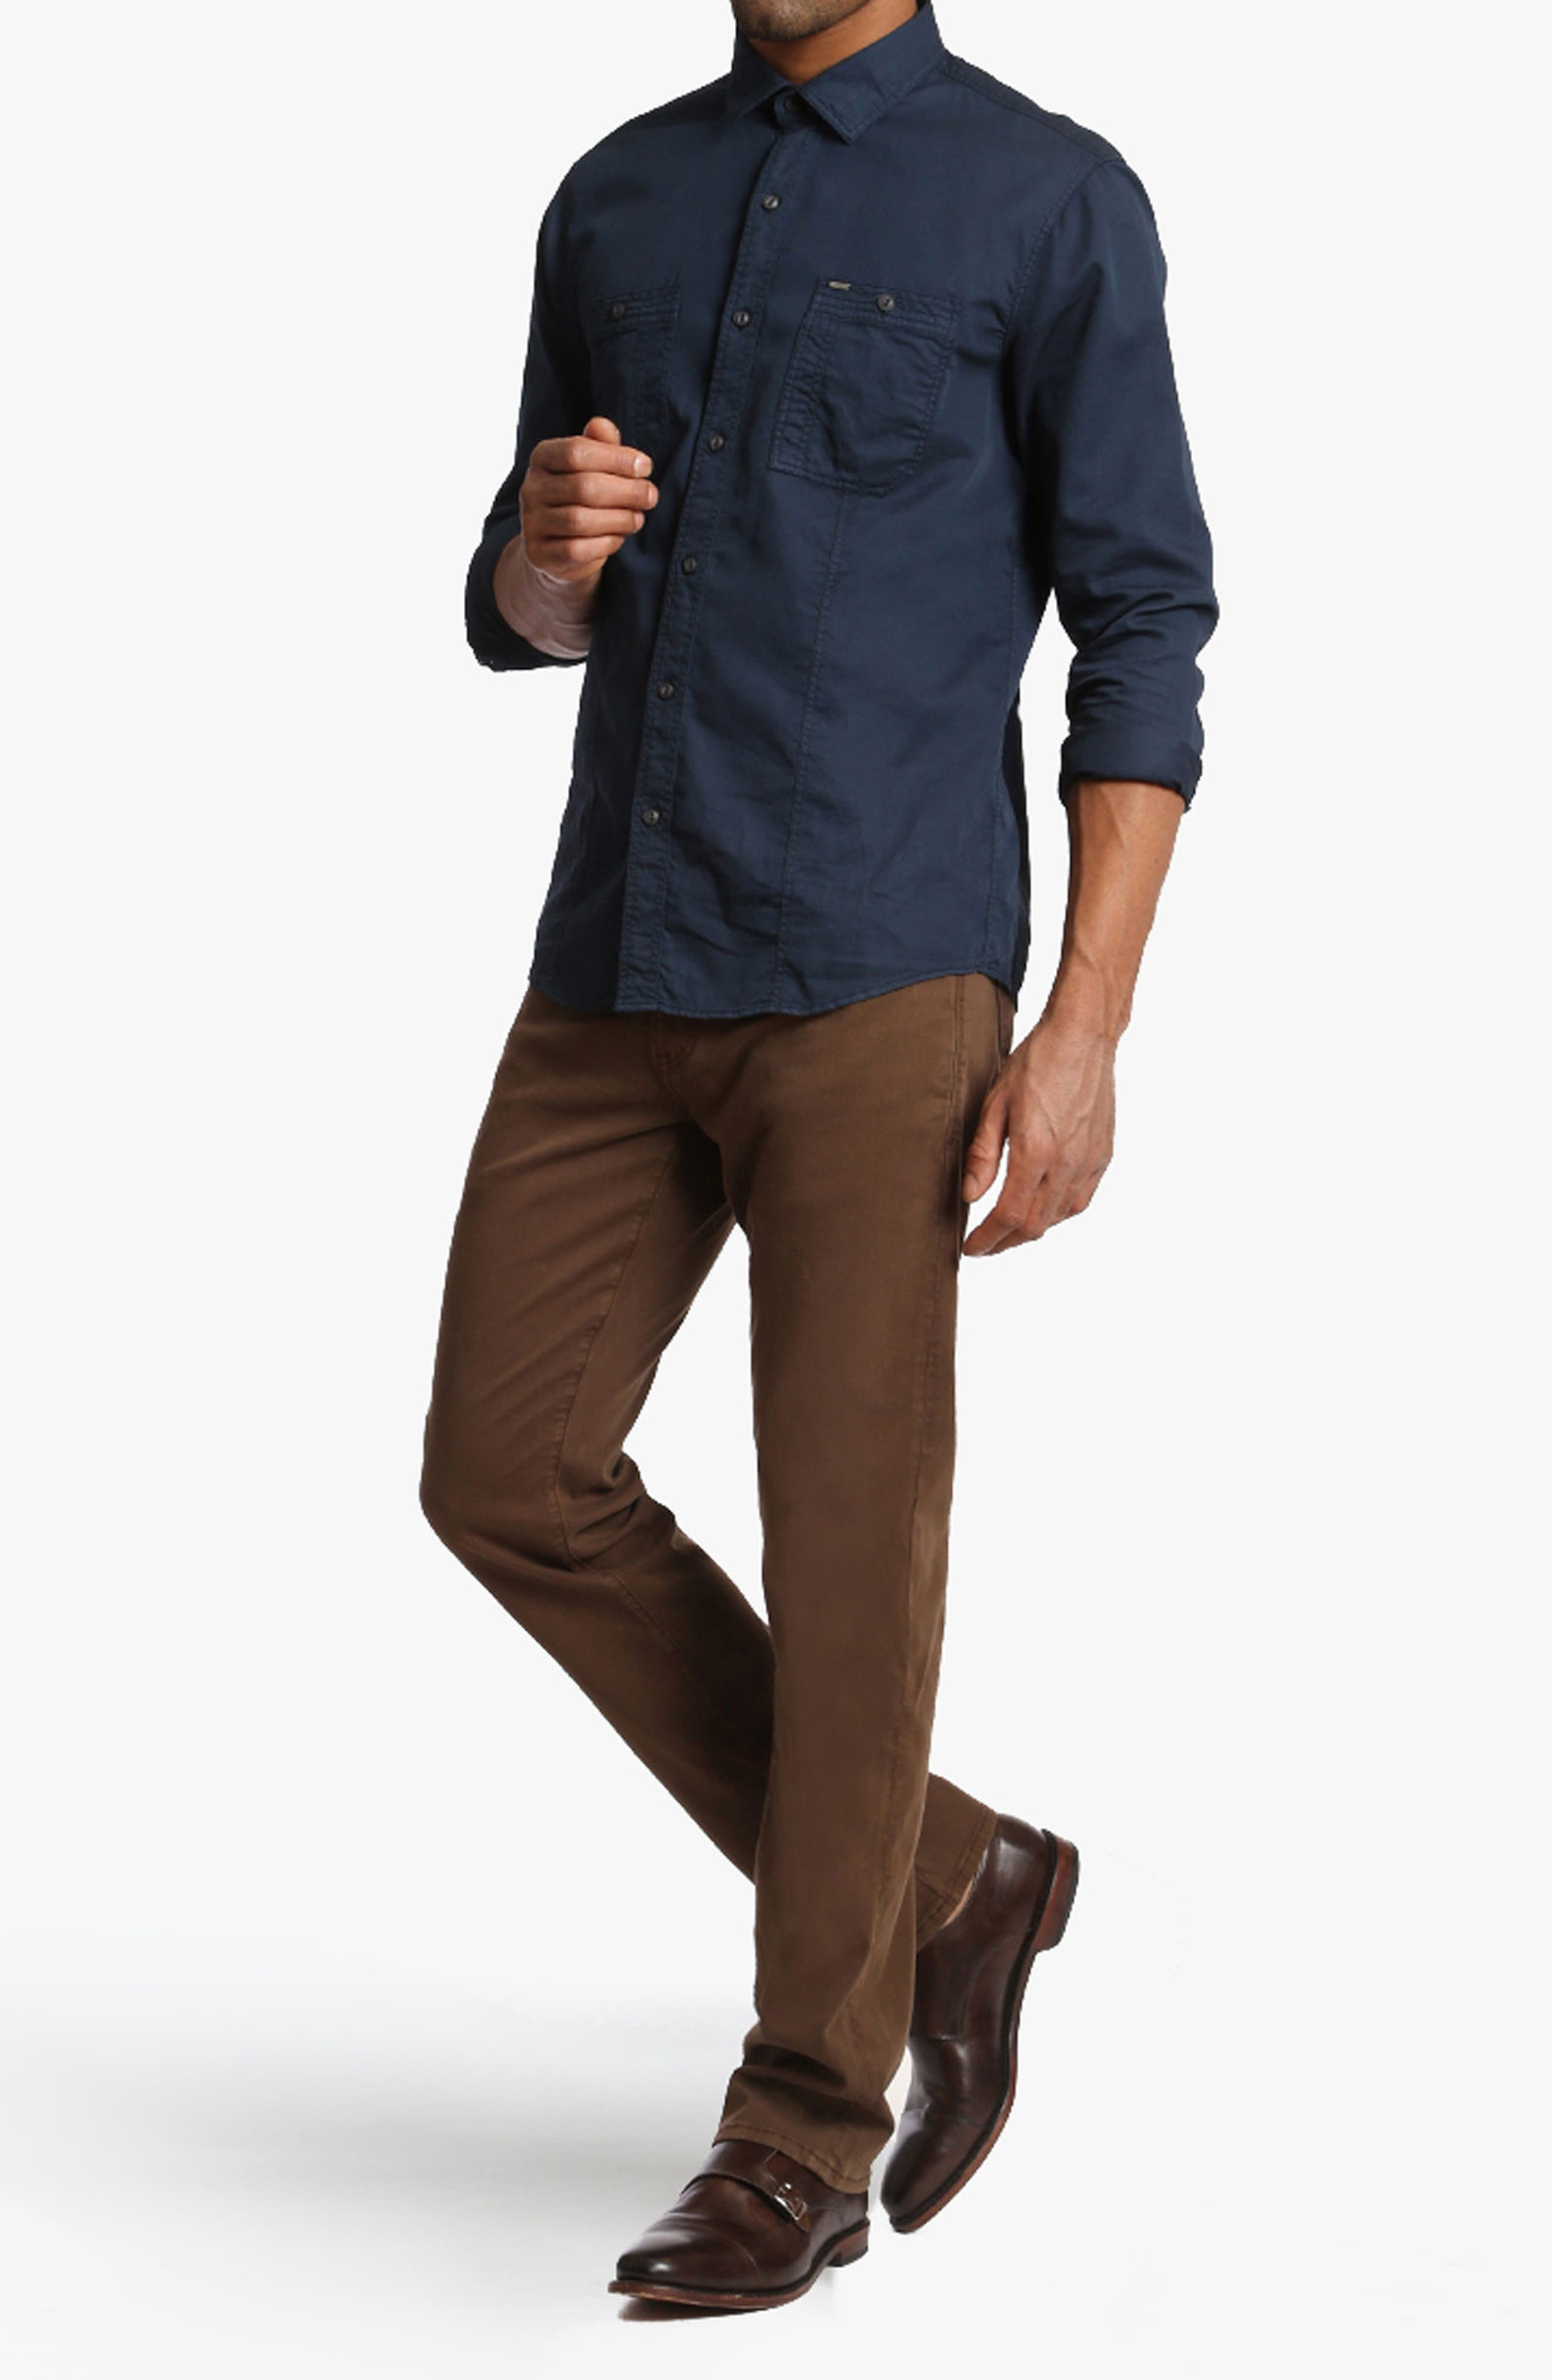 Courage Straight Leg Twill Pants,                             Alternate thumbnail 7, color,                             200